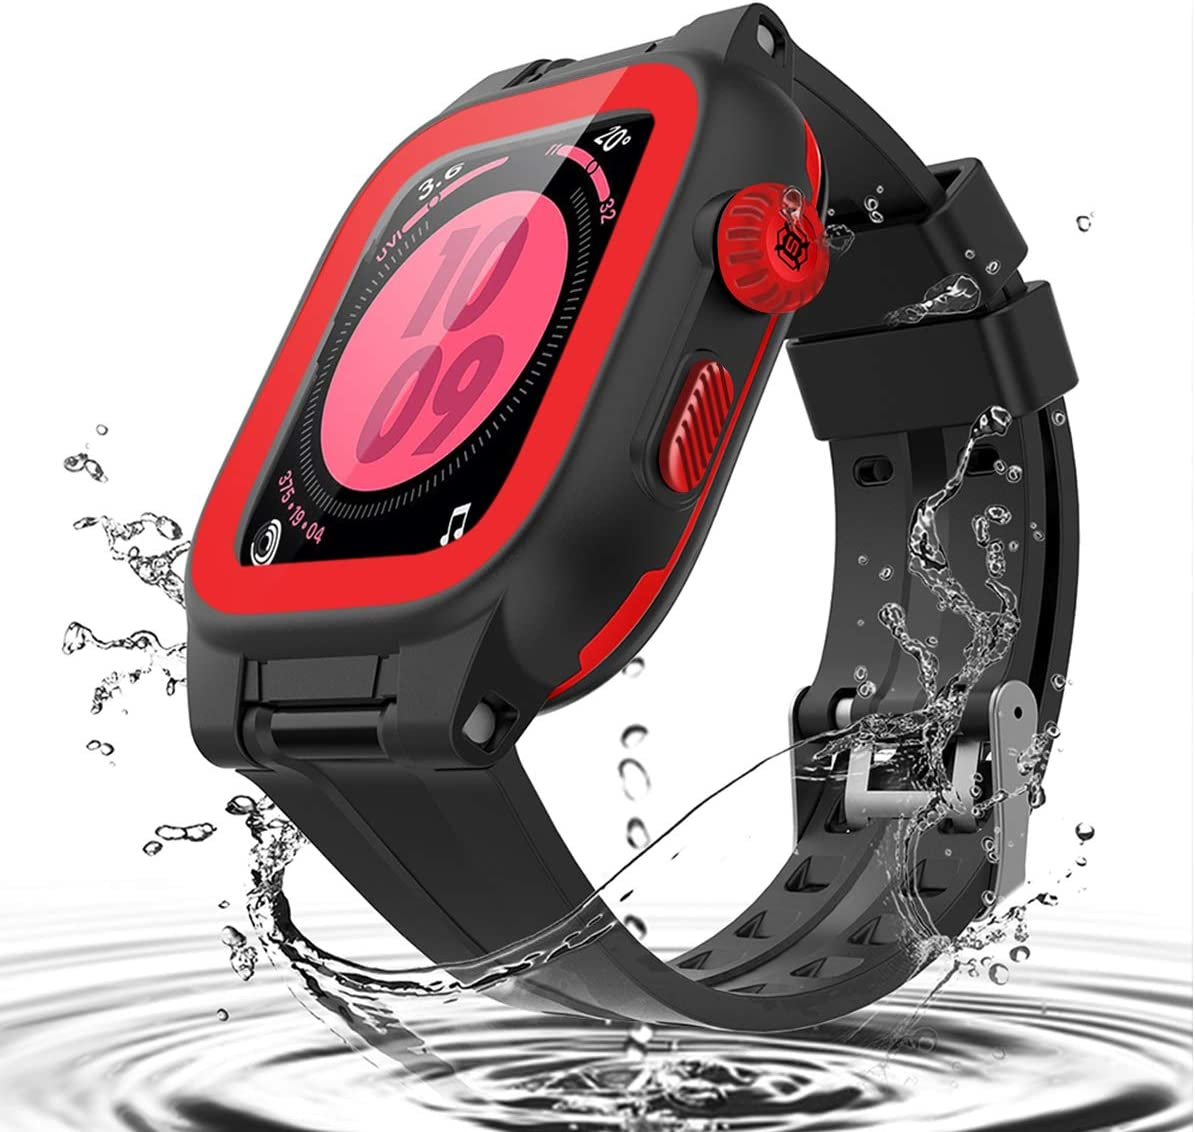 Apple Watch Series SE / 6 / 5 / 4 44mm Case Waterproof with Screen Protector and Band, iWatch Series SE / 6 / 5 / 4 Case Shockproof Dustproof Rugged Full Protection Bumper Case for Men Women (Red)